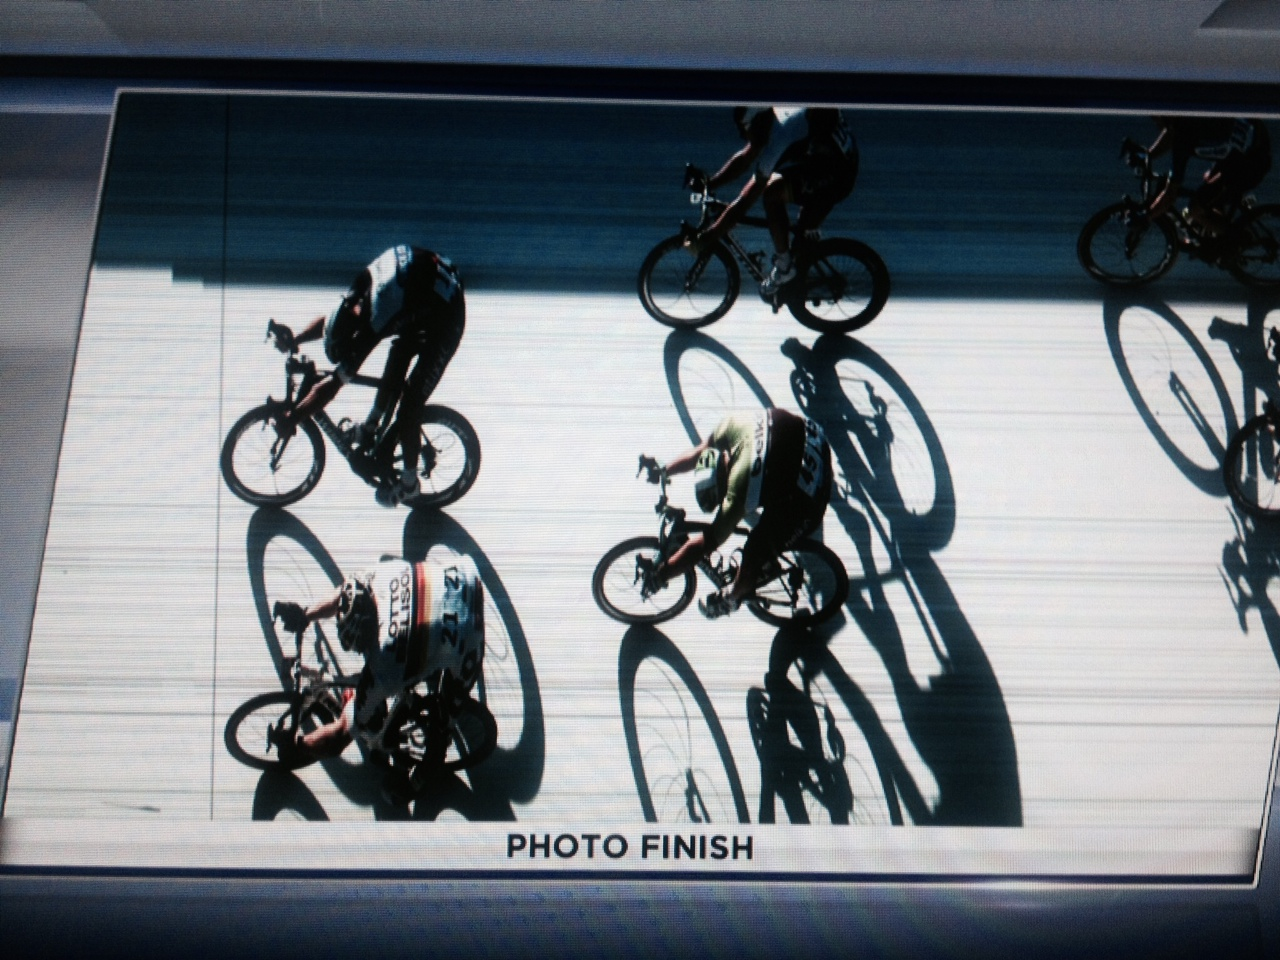 Foto finish Tom Boonen